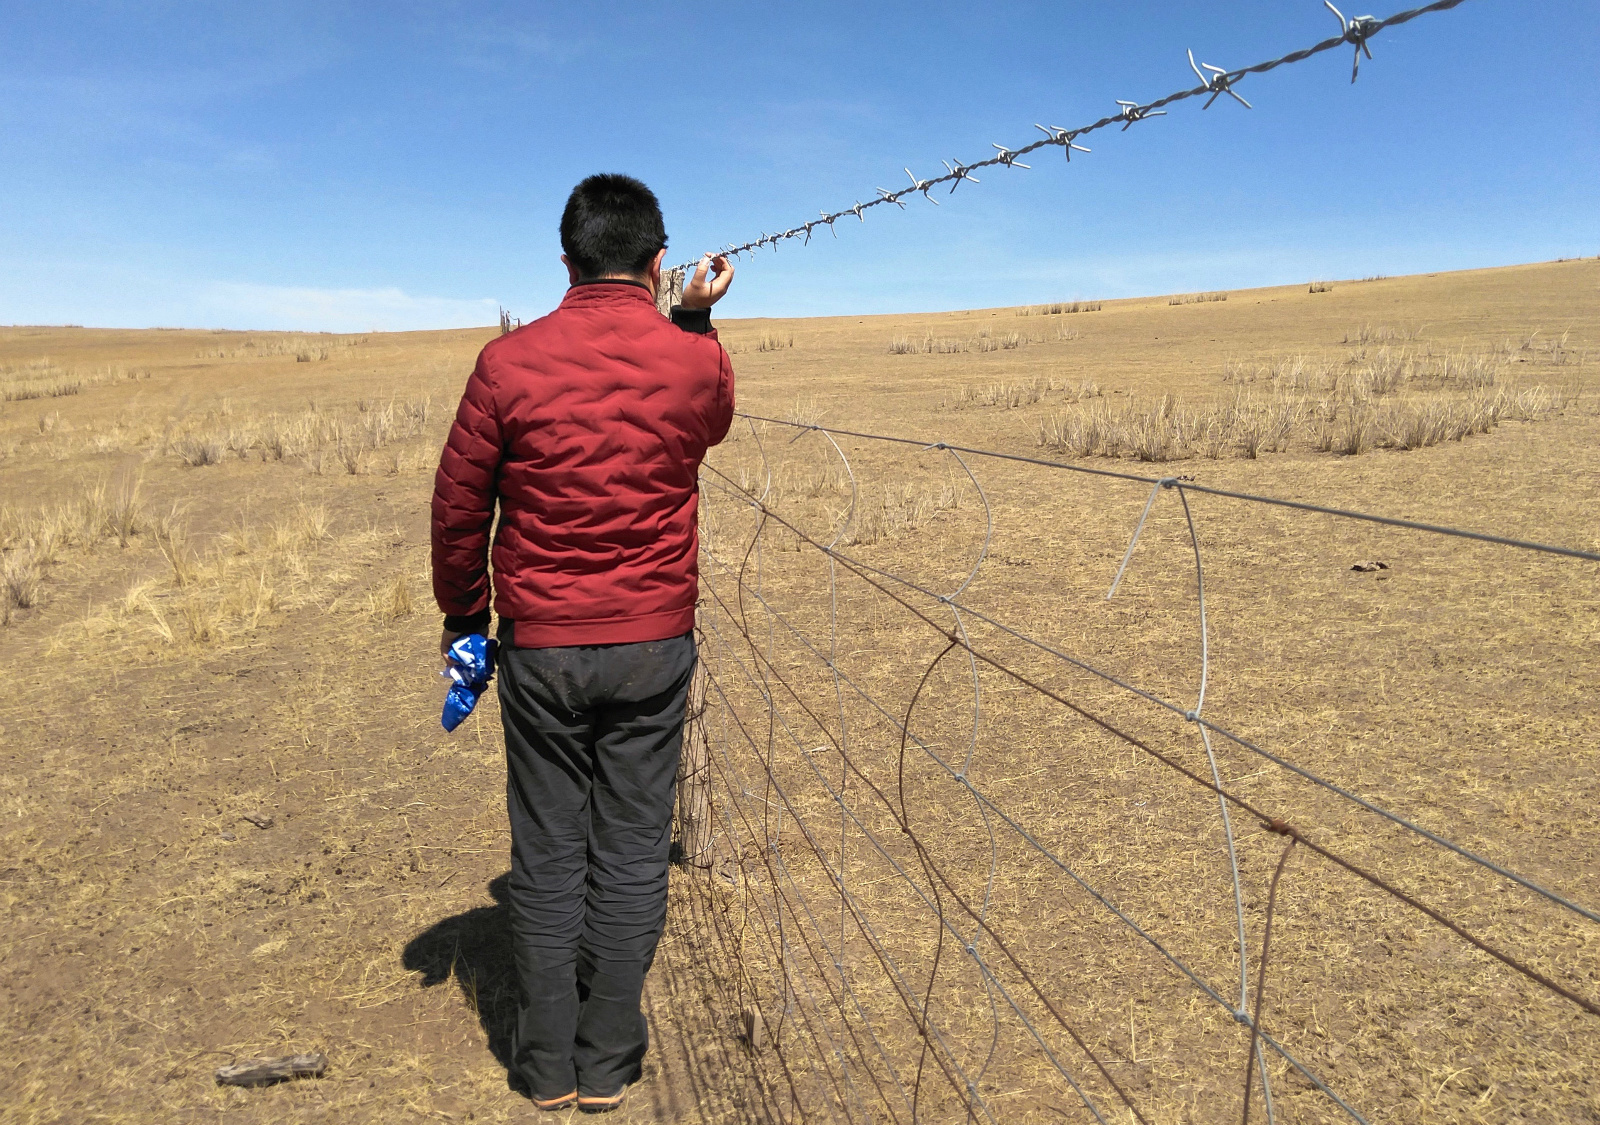 Grasslands divided by 1.5 metre-high fences – too high for wild animals (Image: Shao Wenjie)